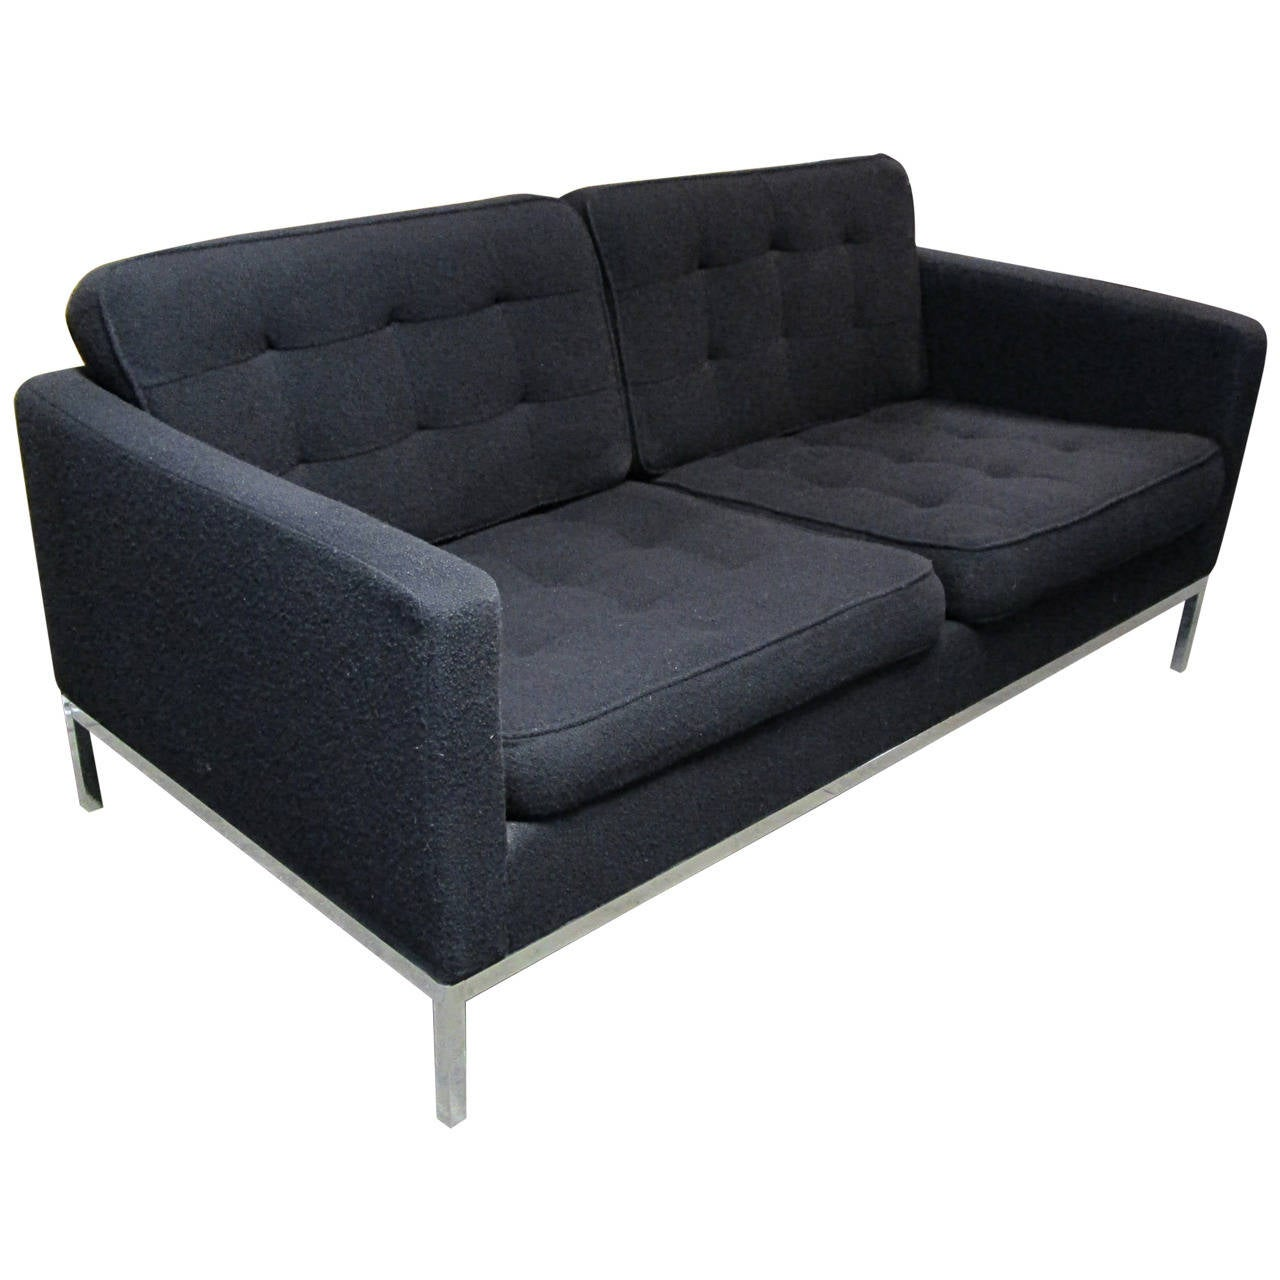 Knoll Two Seat Sofa At 1stdibs